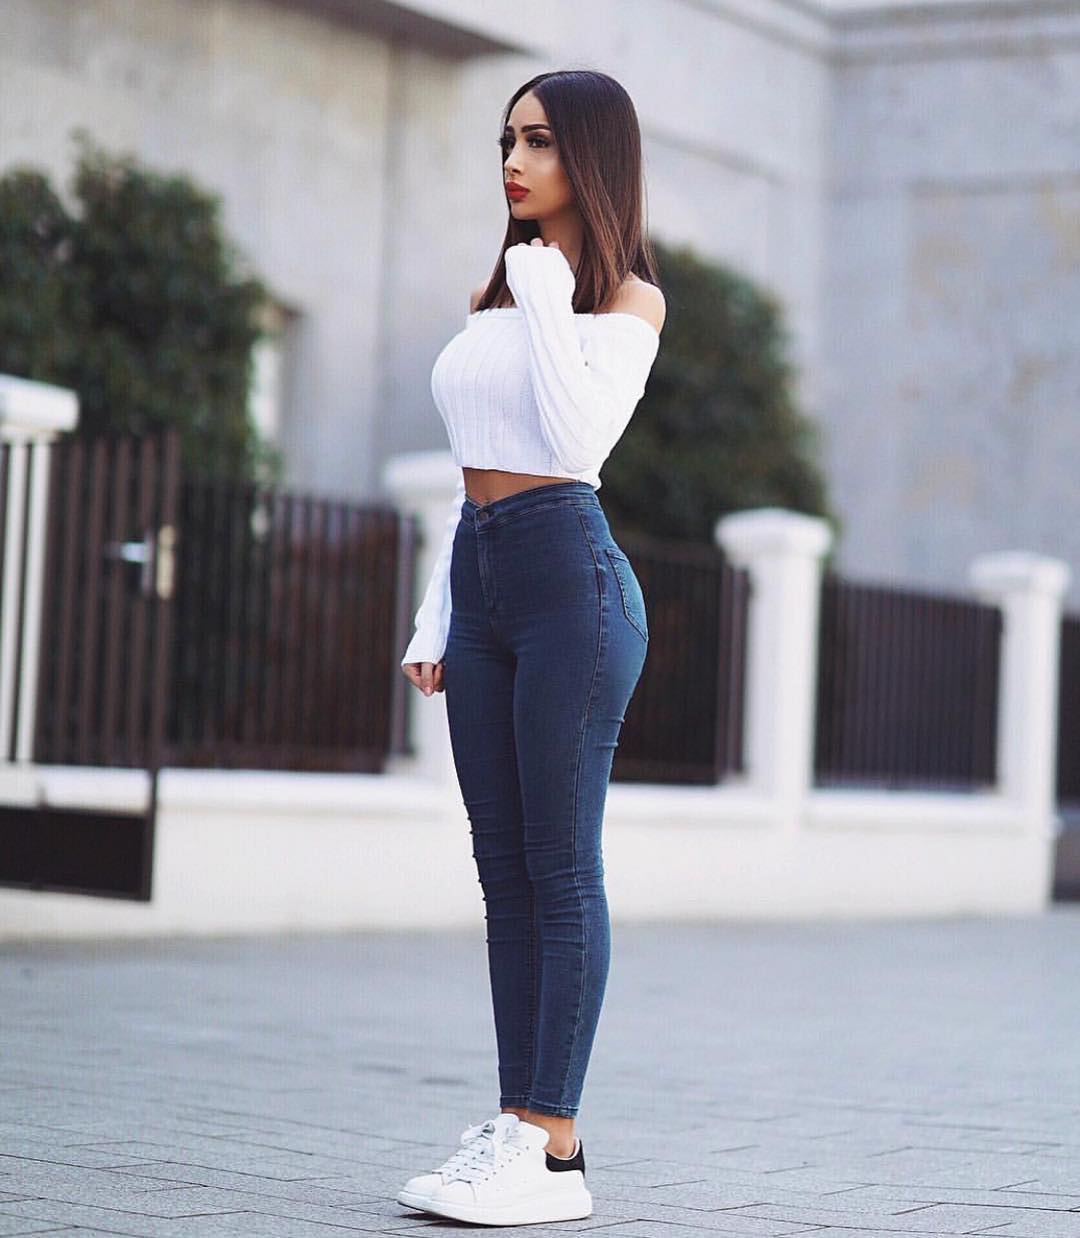 Urban Style: Off Shoulder White Top And High Rise Skinny Jeans With White Kicks 2020